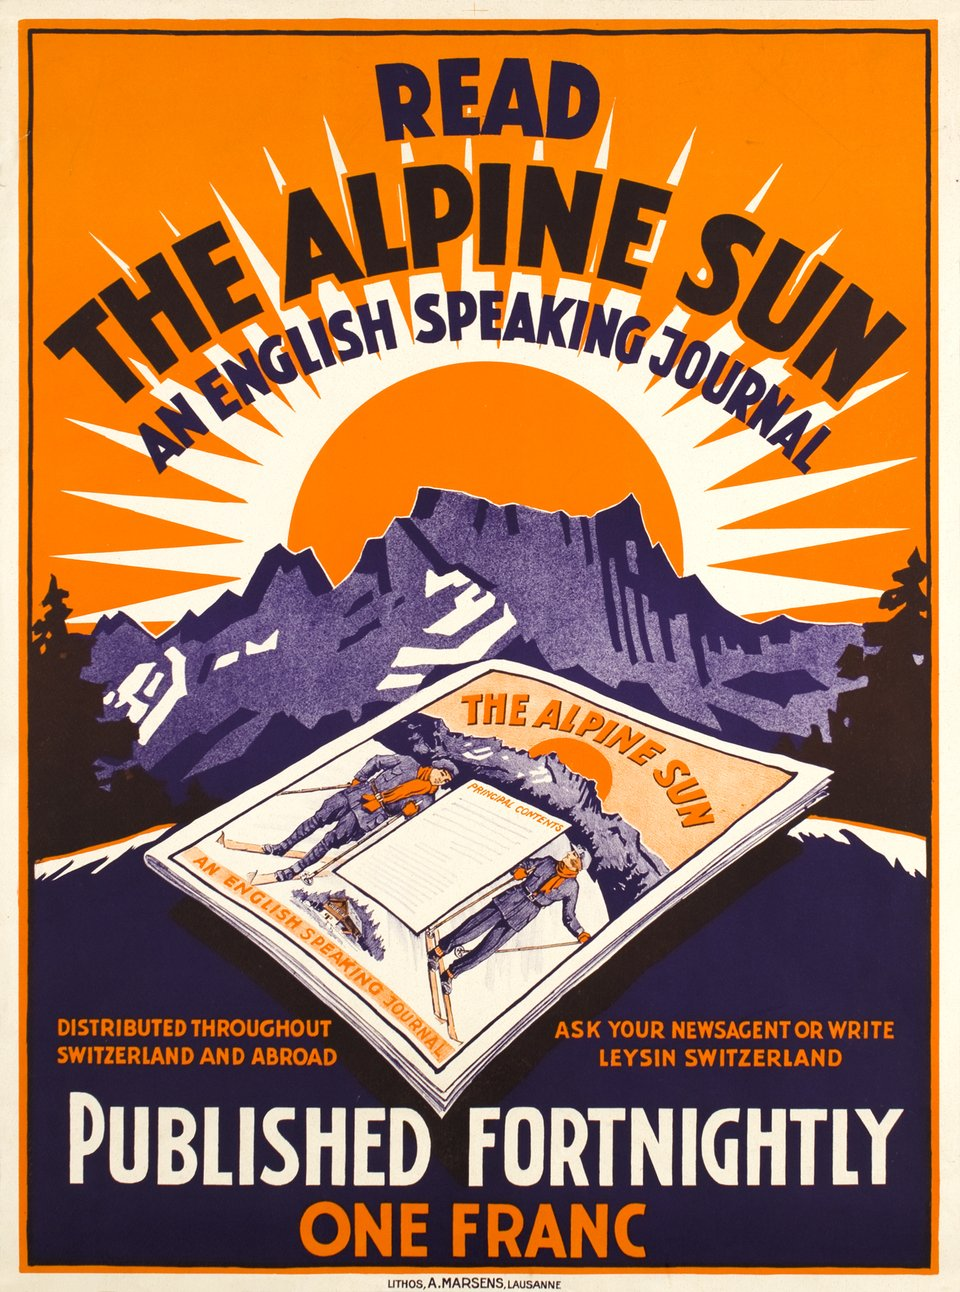 Read the Alpine Sun, an english speaking journal – Affiche ancienne – ANONYME – 1930